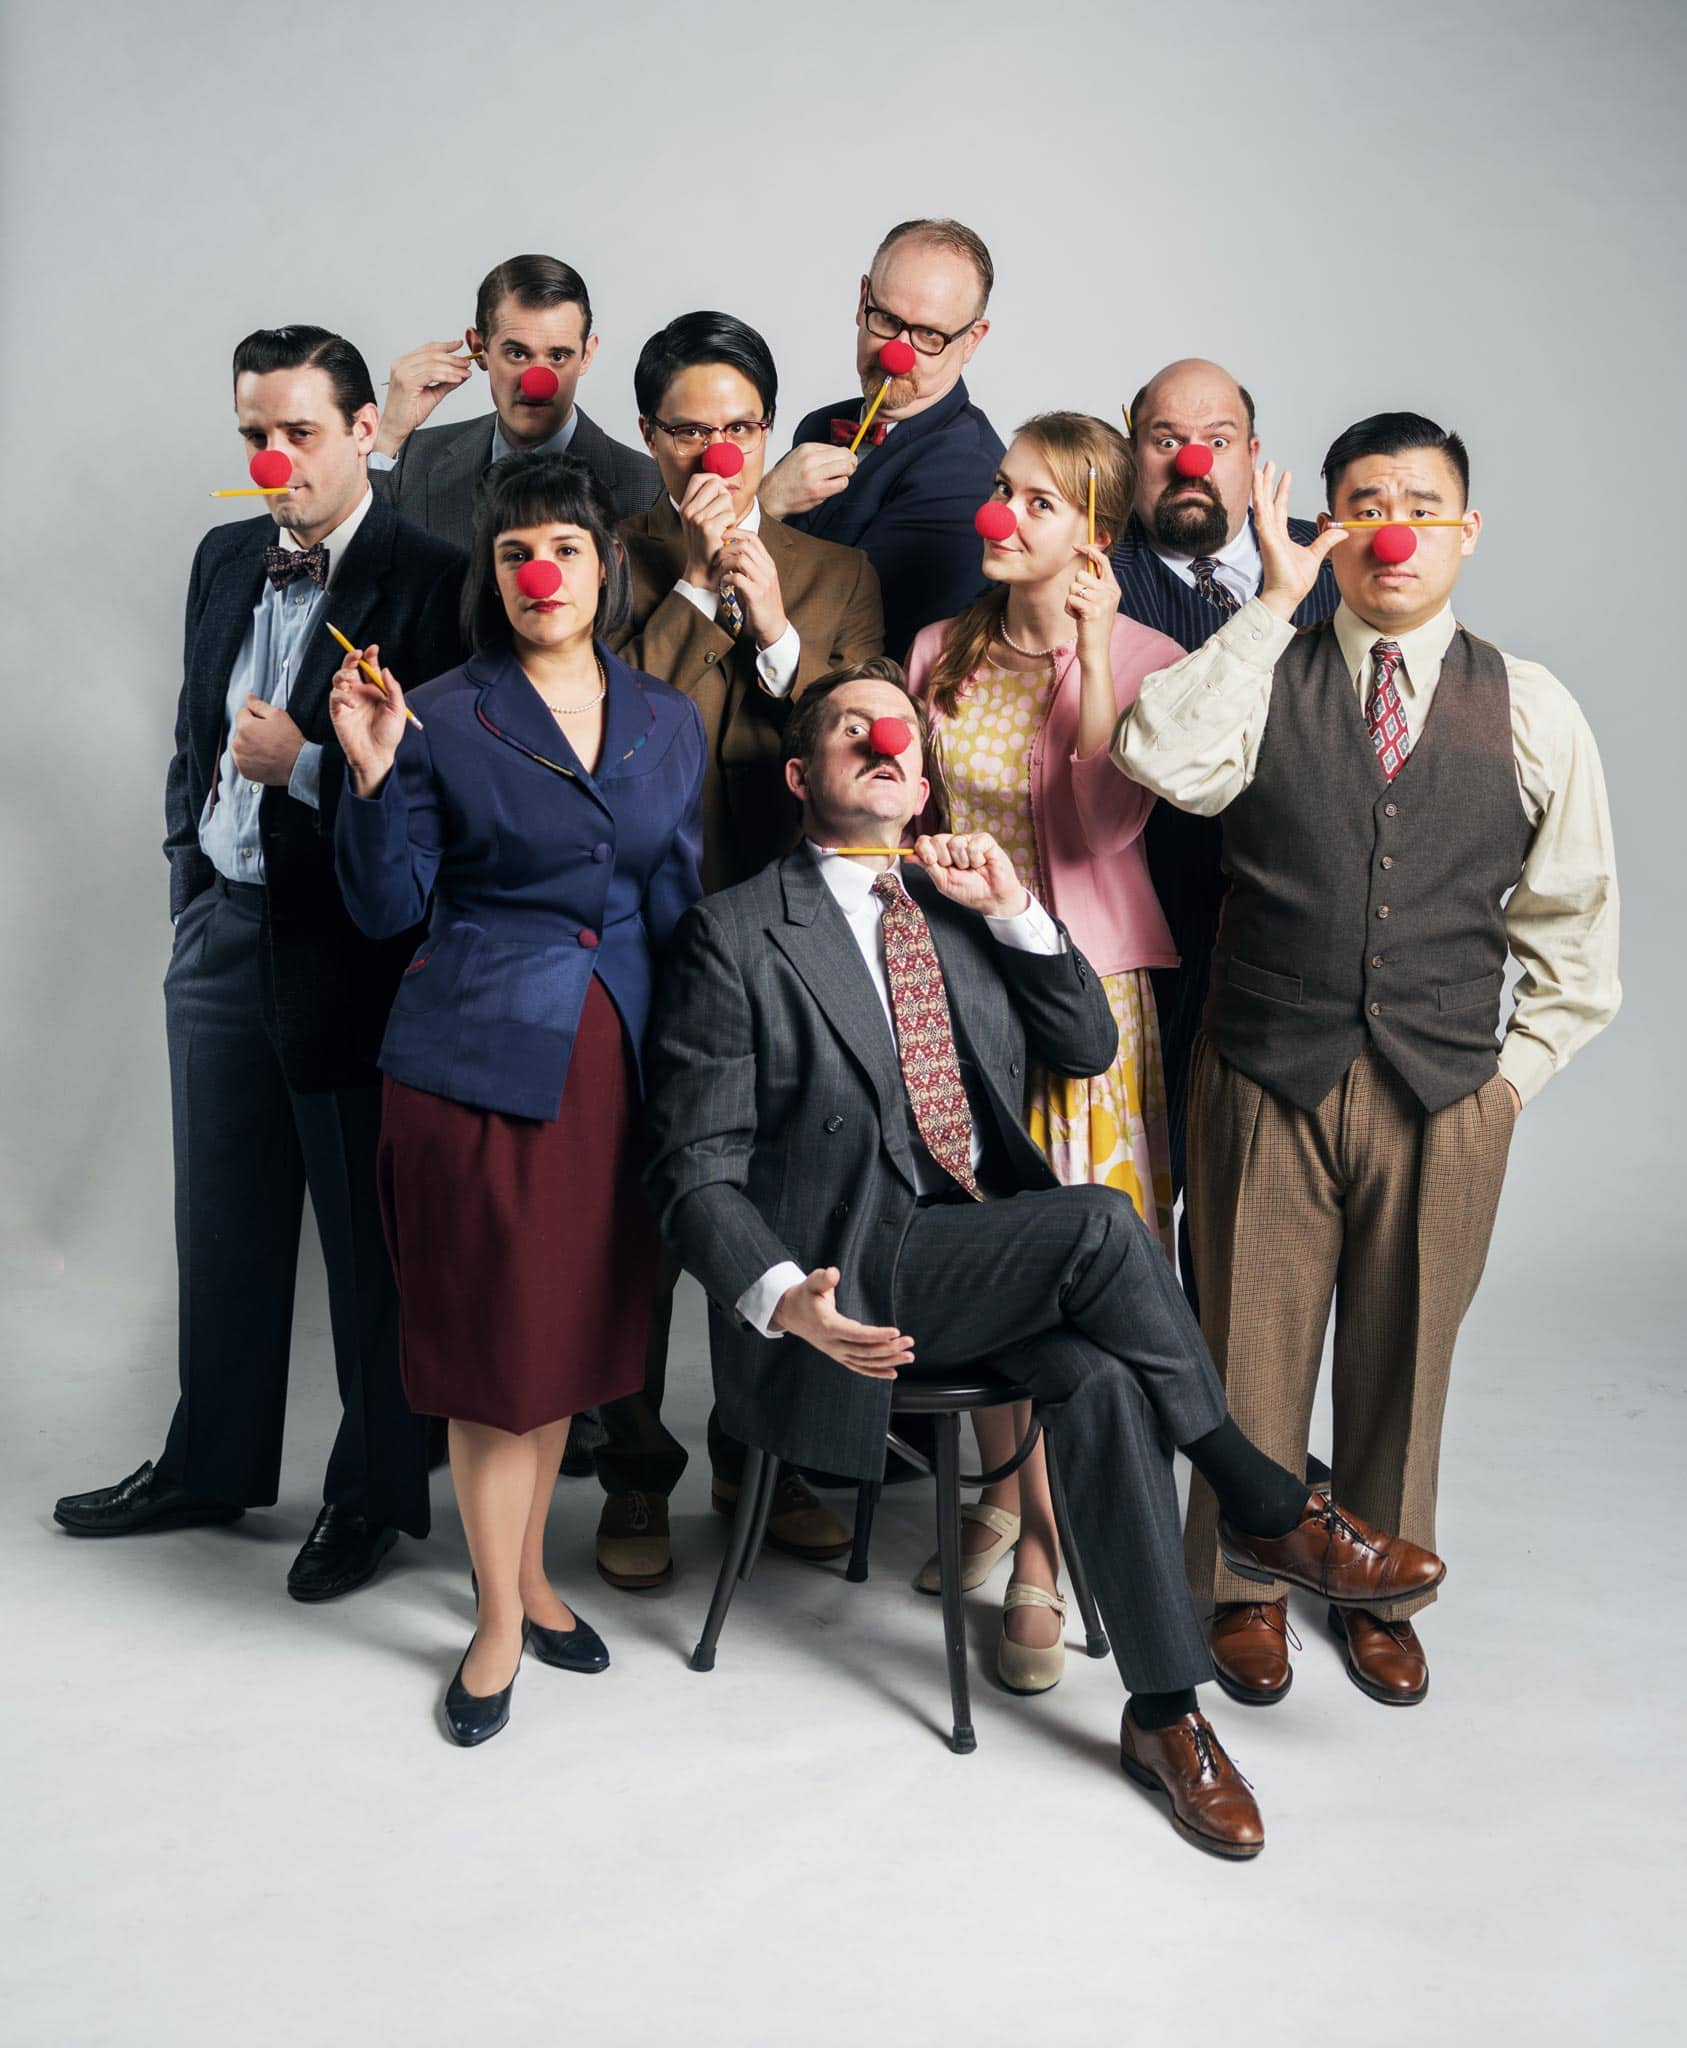 The Cast of Neil Simon's Laughter on the 23rd Floor. (Back row left to right) Max Tachis, Michael Champlin, Dan Demers. (Center, left to right) Josiah Frampton, Seton Chiang, Katie McGee, Phil Wong*. (Front Center, left to right) Roneet Aliza Rahamim, Patrick Kelly Jones*.  *Actor Appears Courtesy of Actors Equity Association